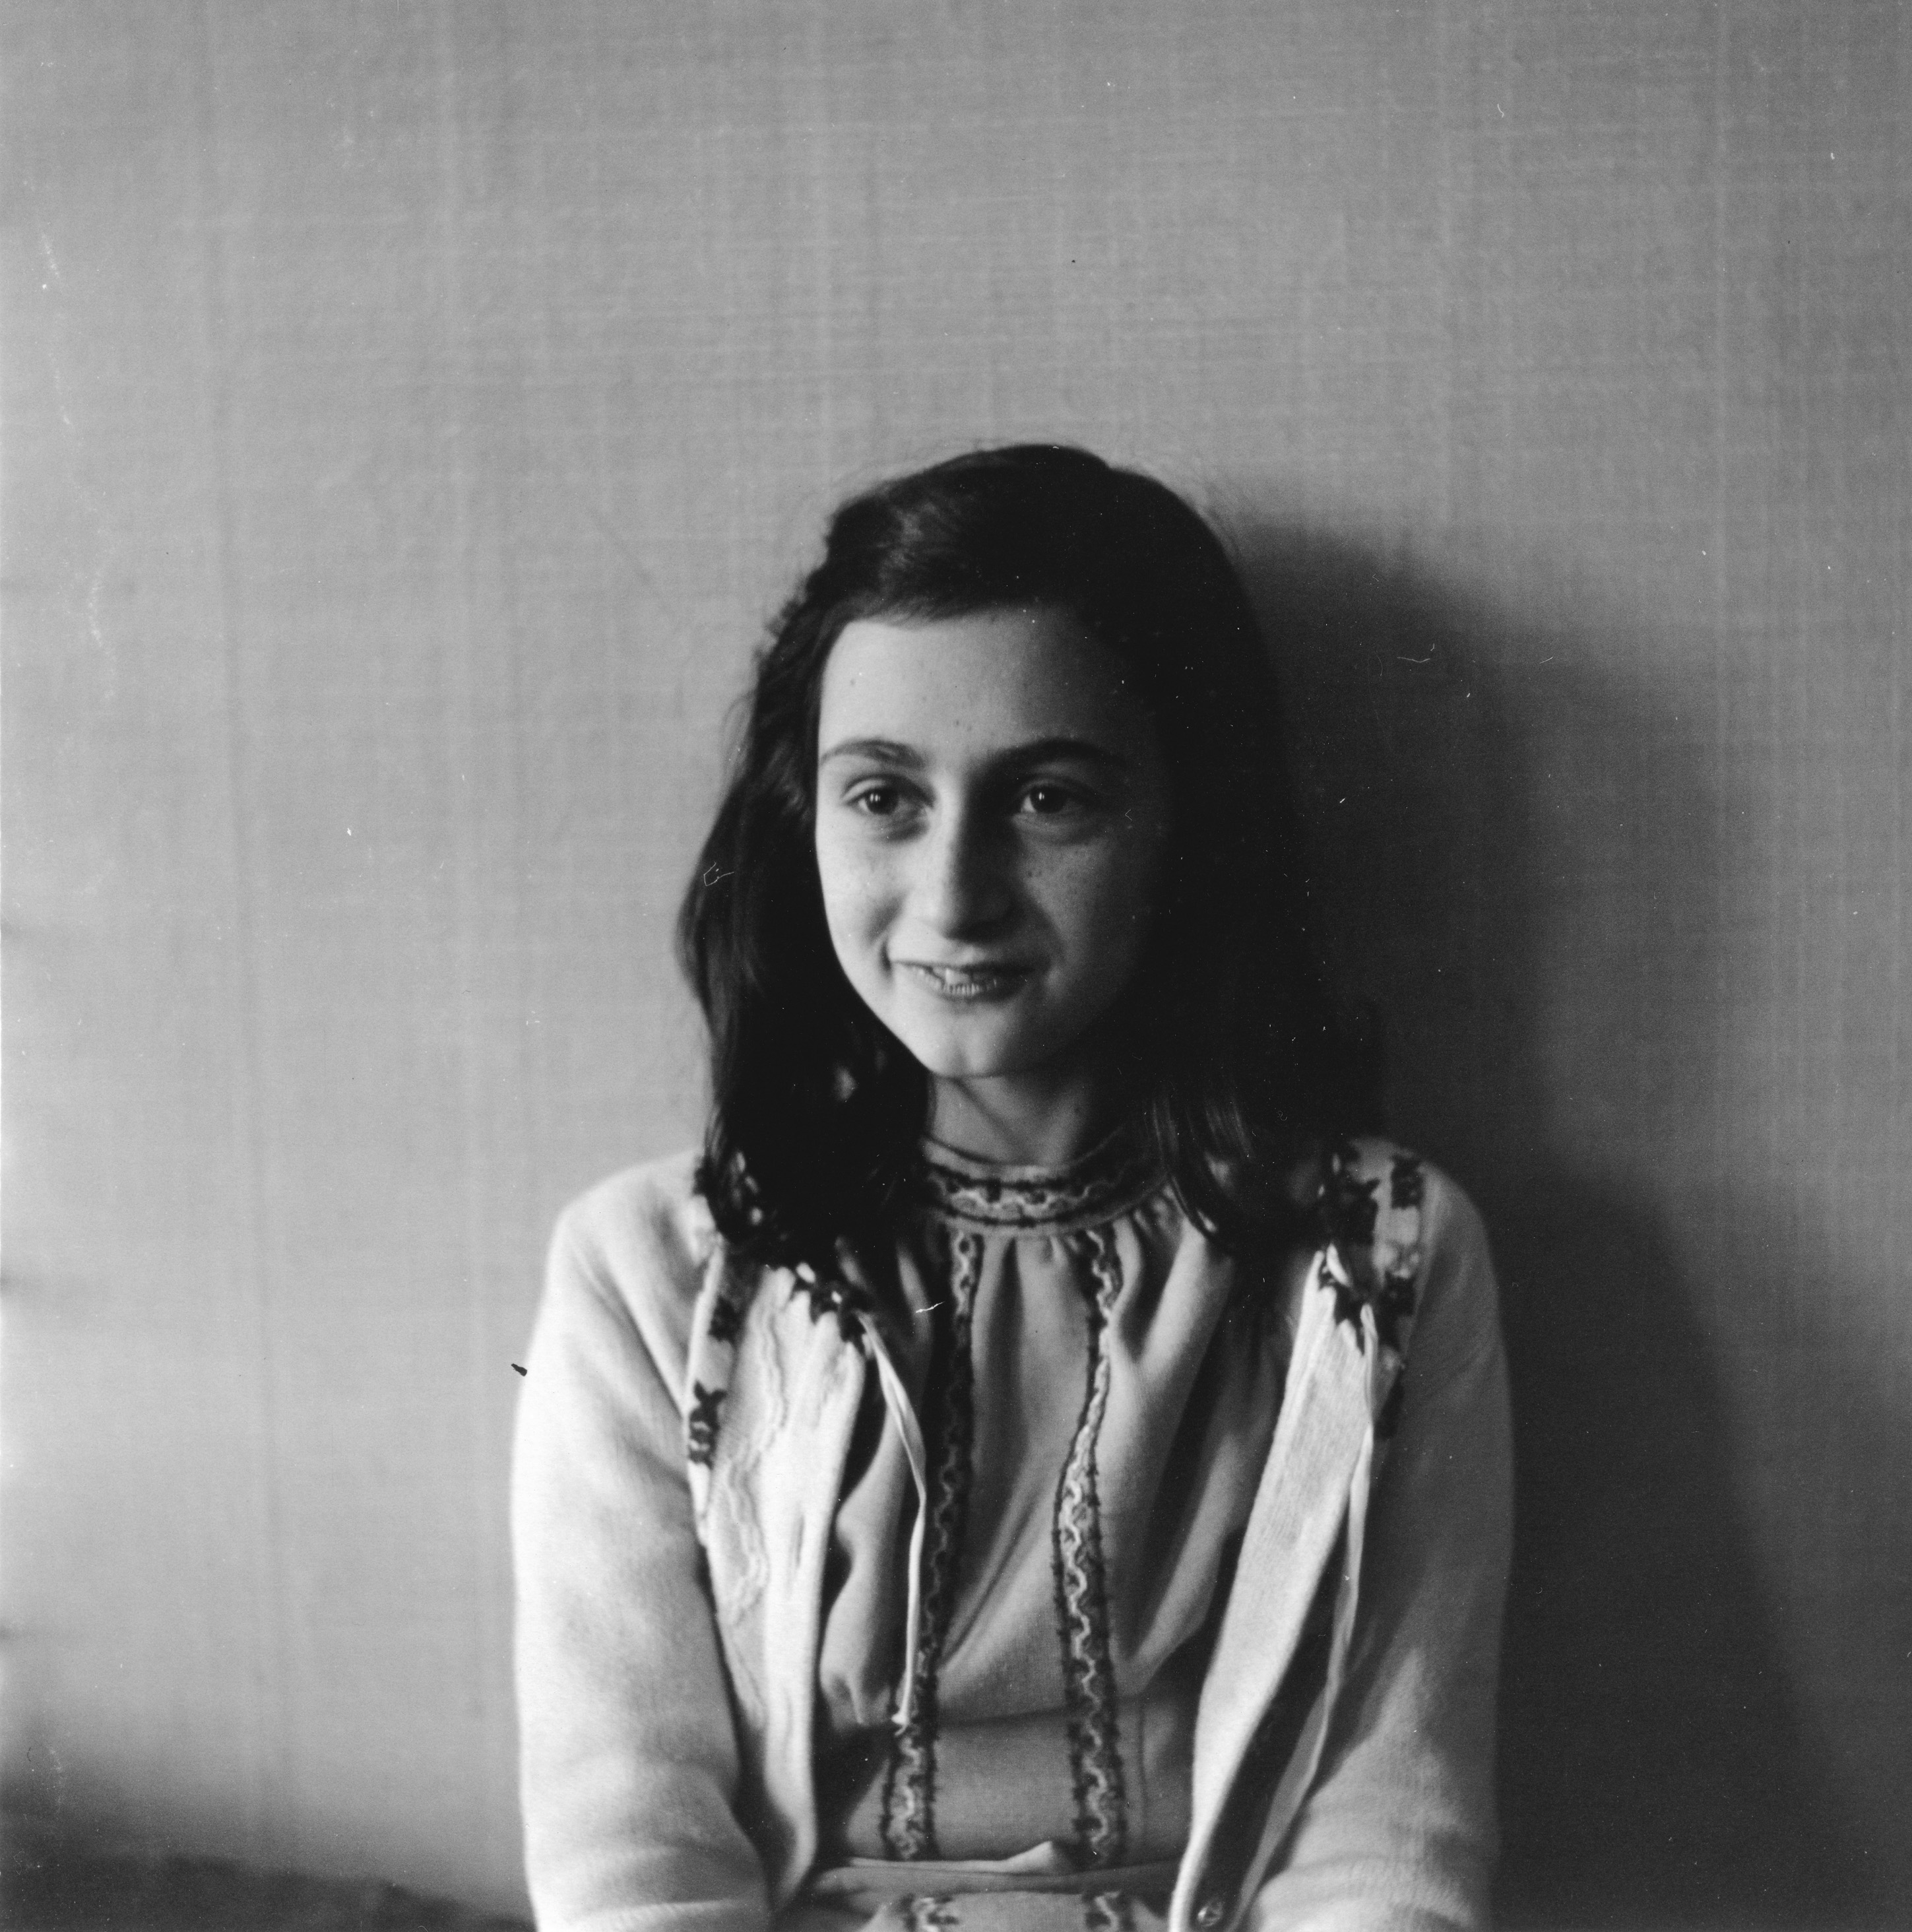 Anne Frank poses in 1941